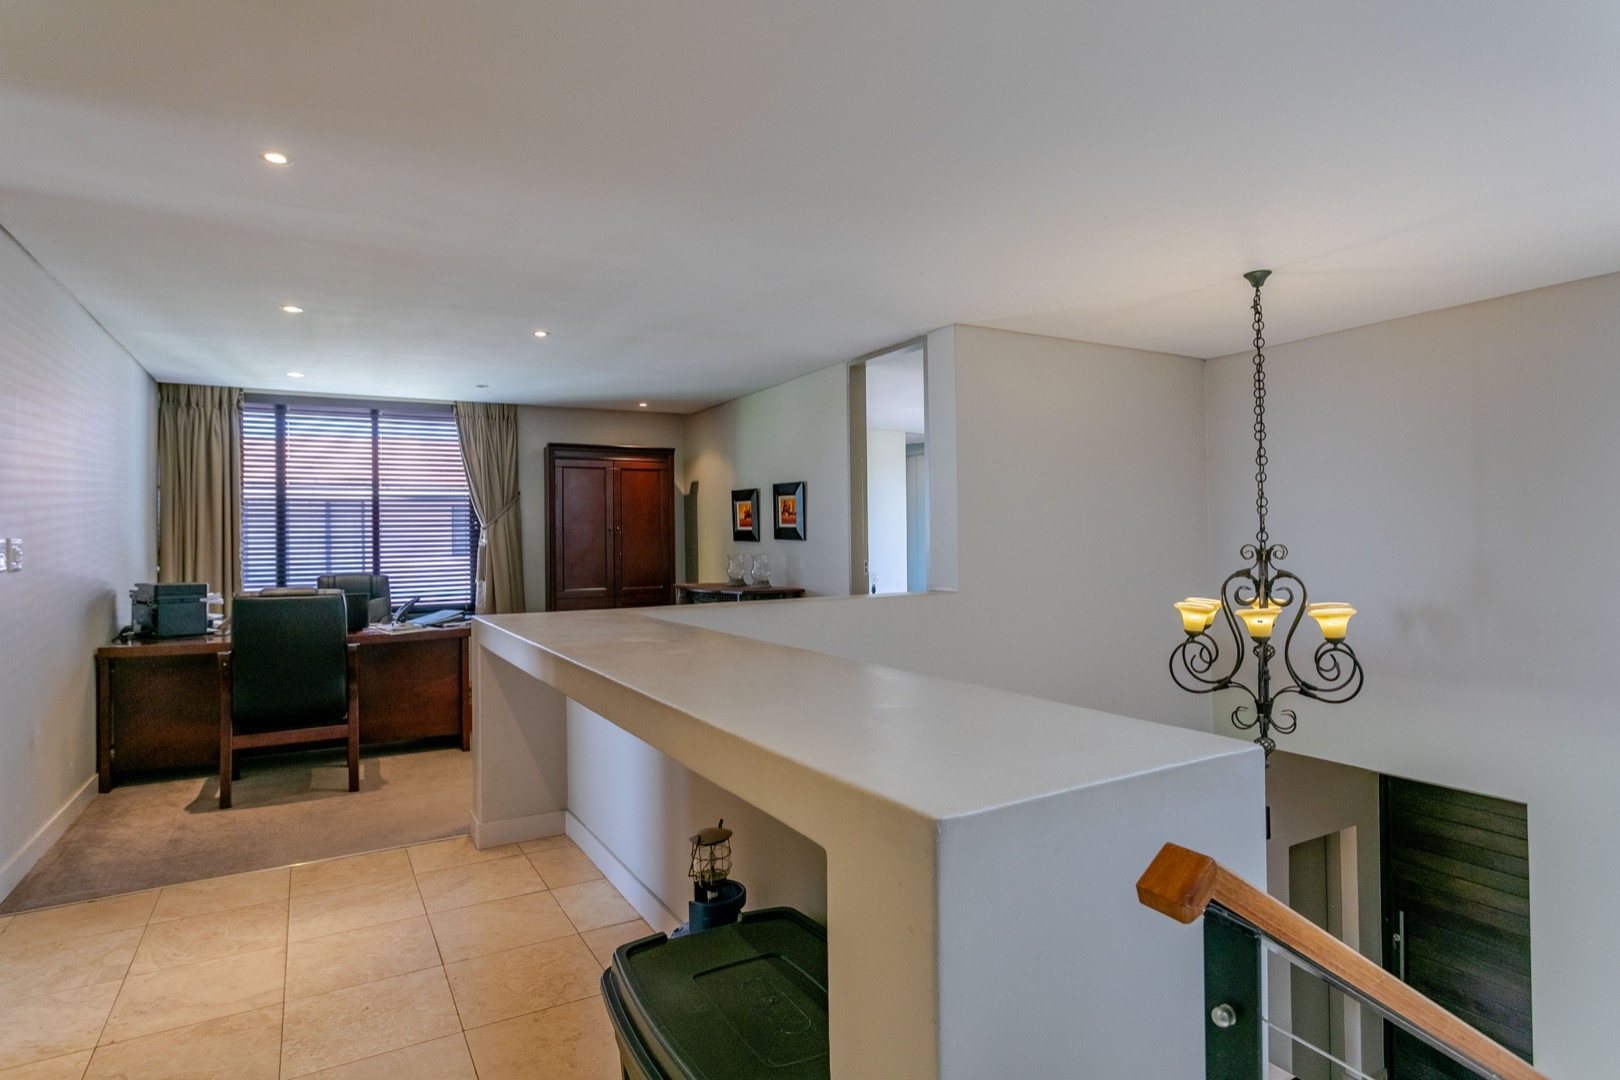 2 Bedroom House For Sale in Lombardy Estate